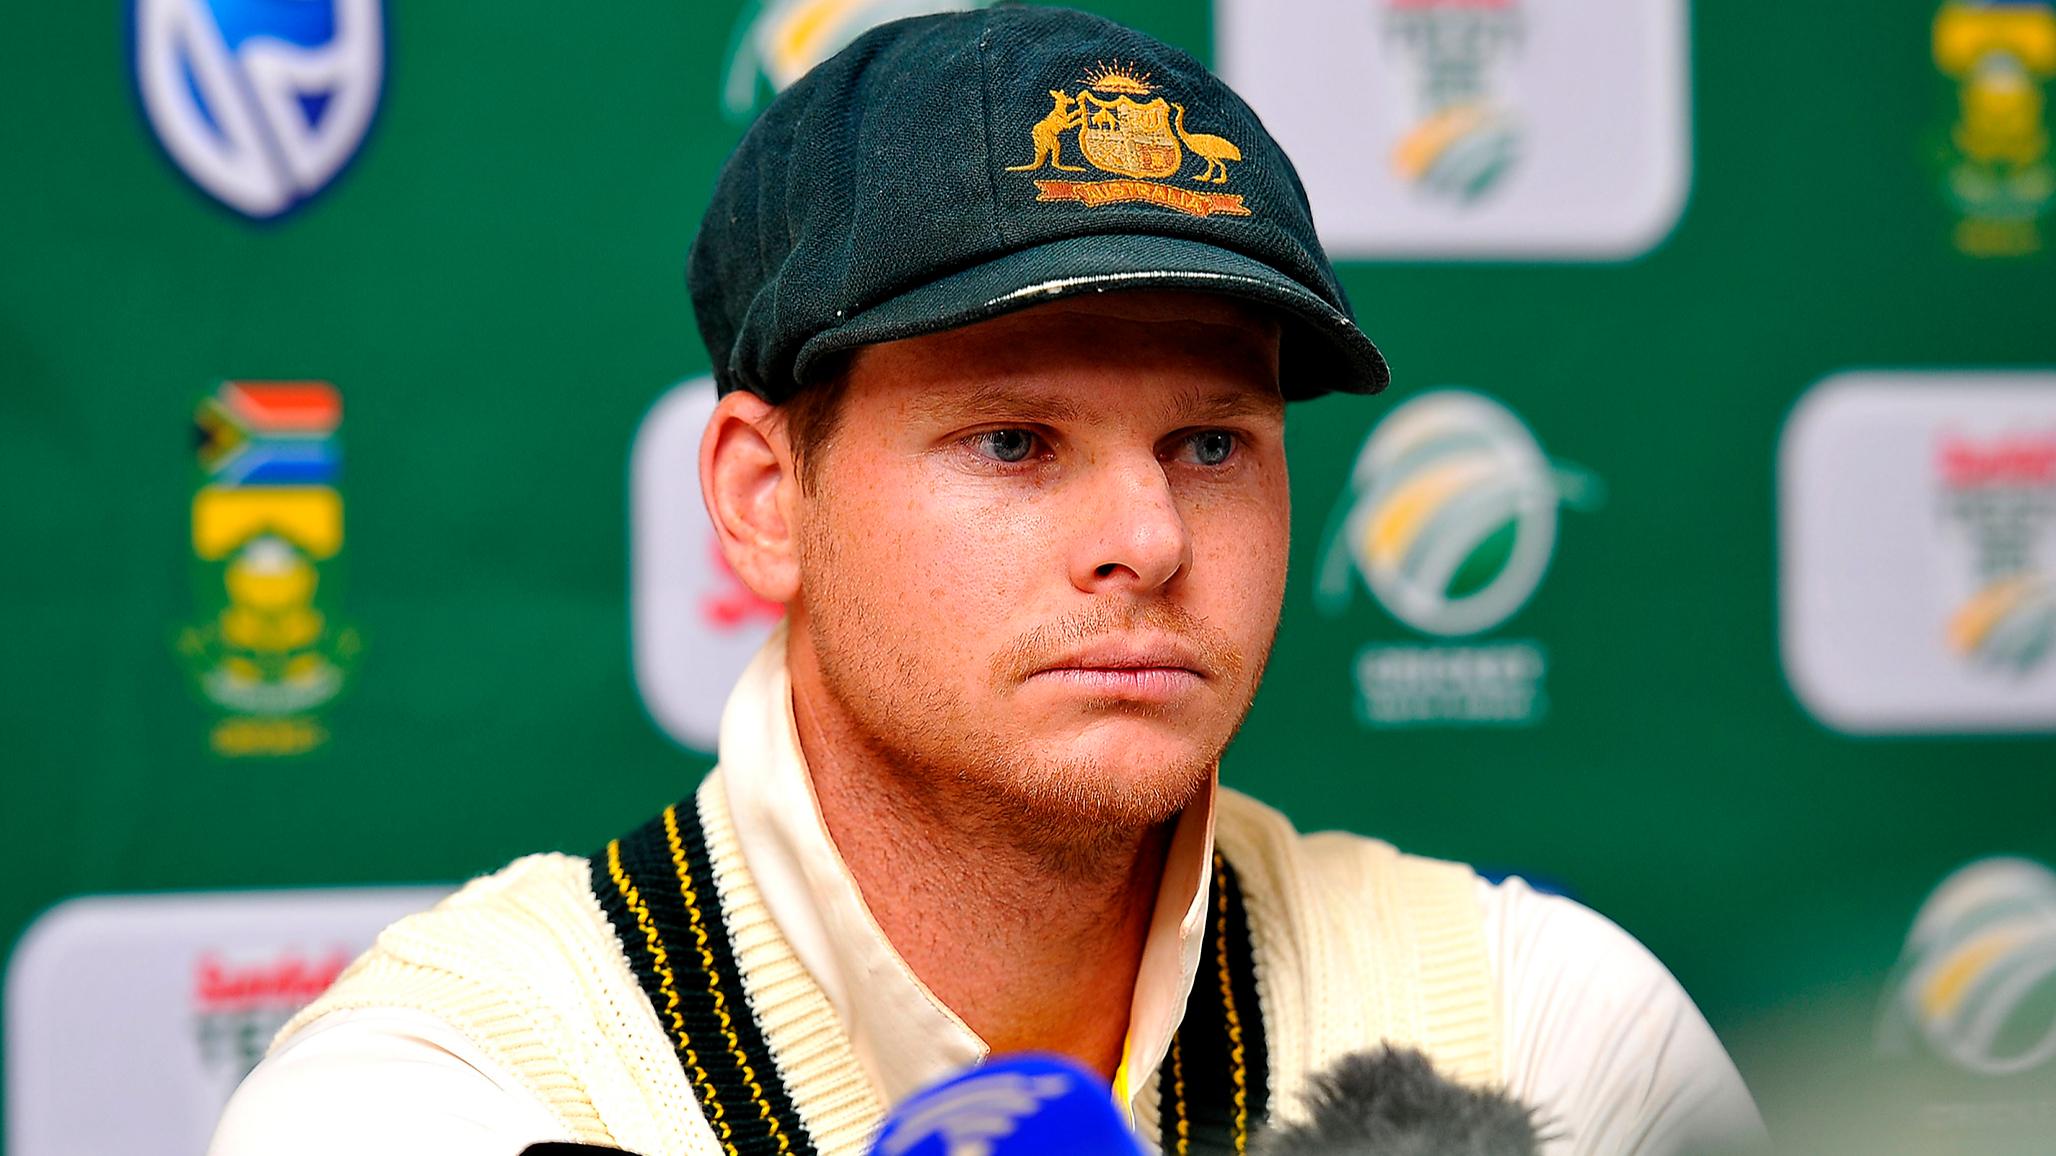 Ball-tampering scandal: Former Australian coach John Buchanan sympathise with Steve Smith post ball tampering row